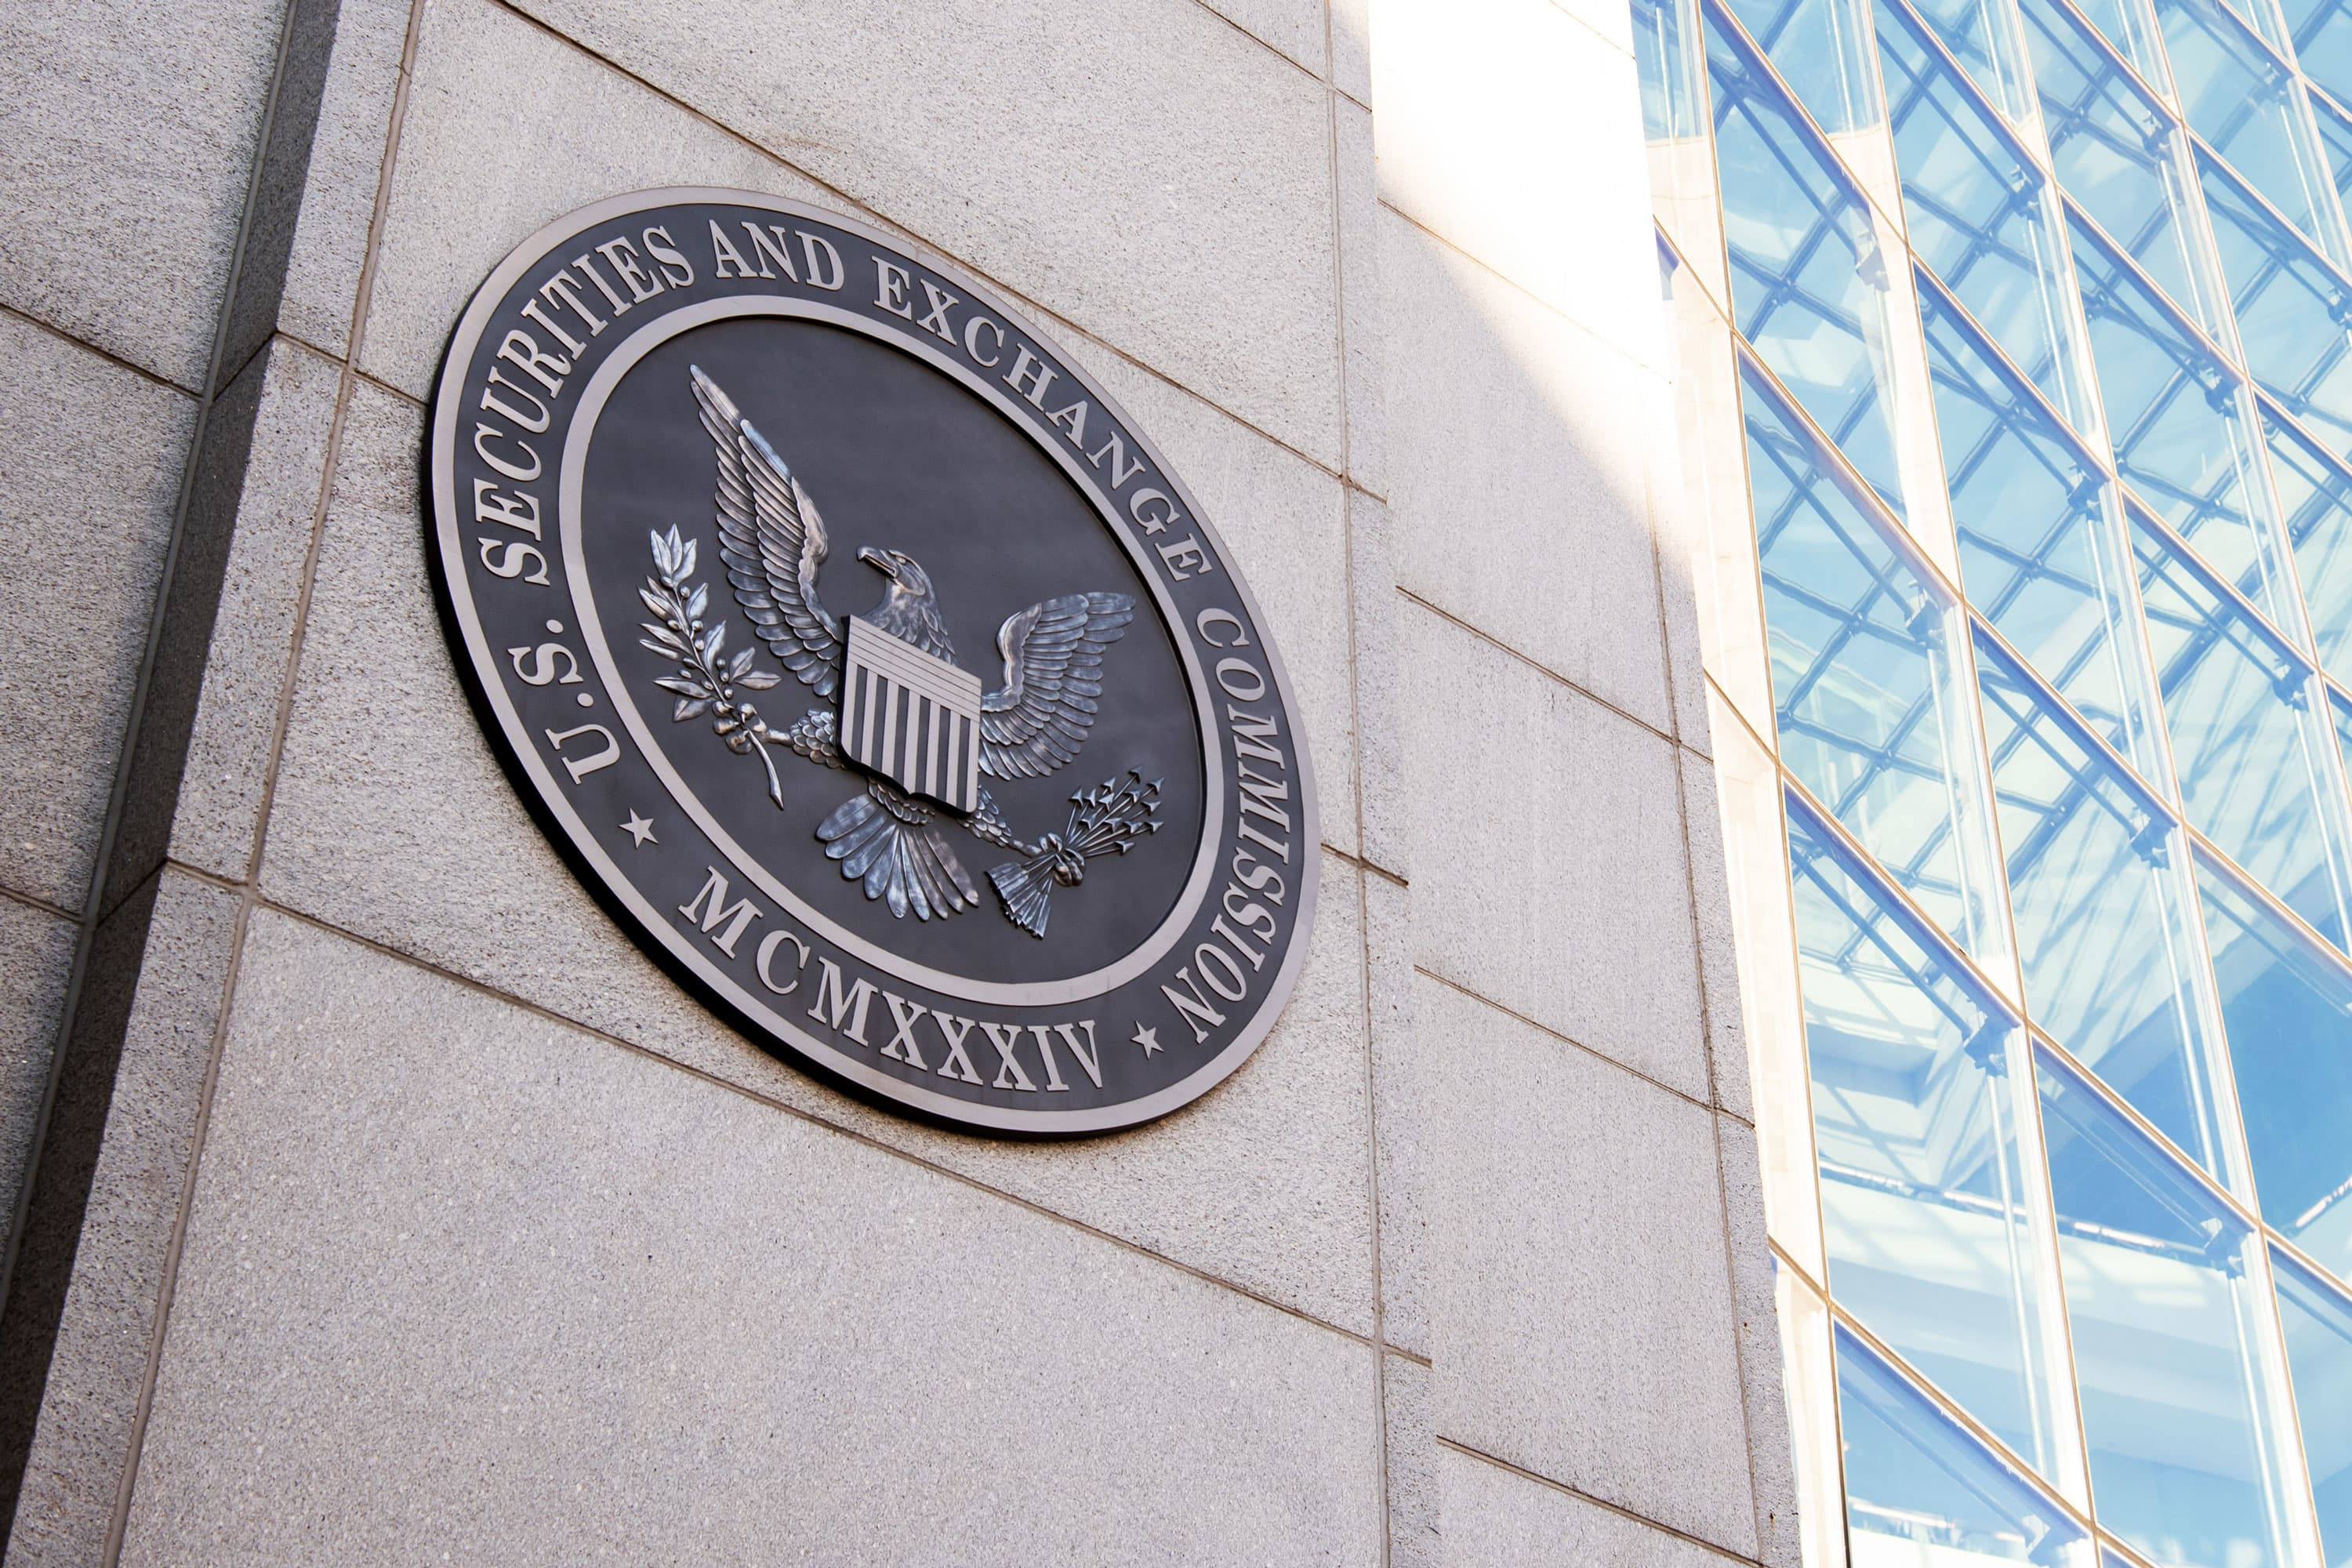 U.S. SEC enforcement chief steps down after five days on job